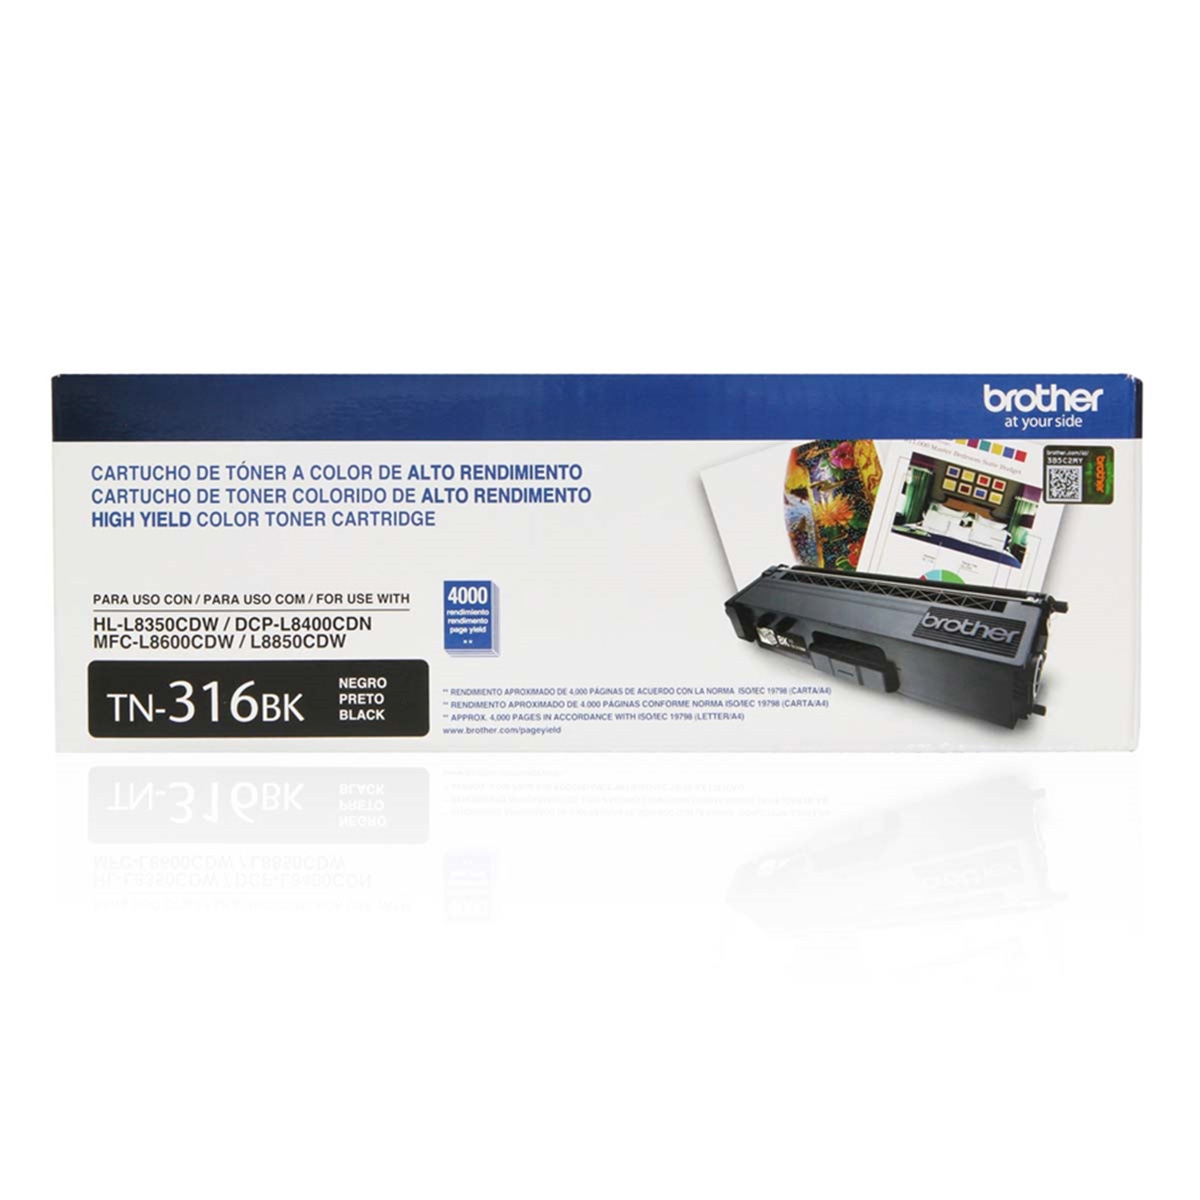 Toner Brother Original TN-316BK | TN316BK Black | HL-L8350CDW | MFC-L8600CDW | DCP-L8400CDN | MFC-L8850CDW